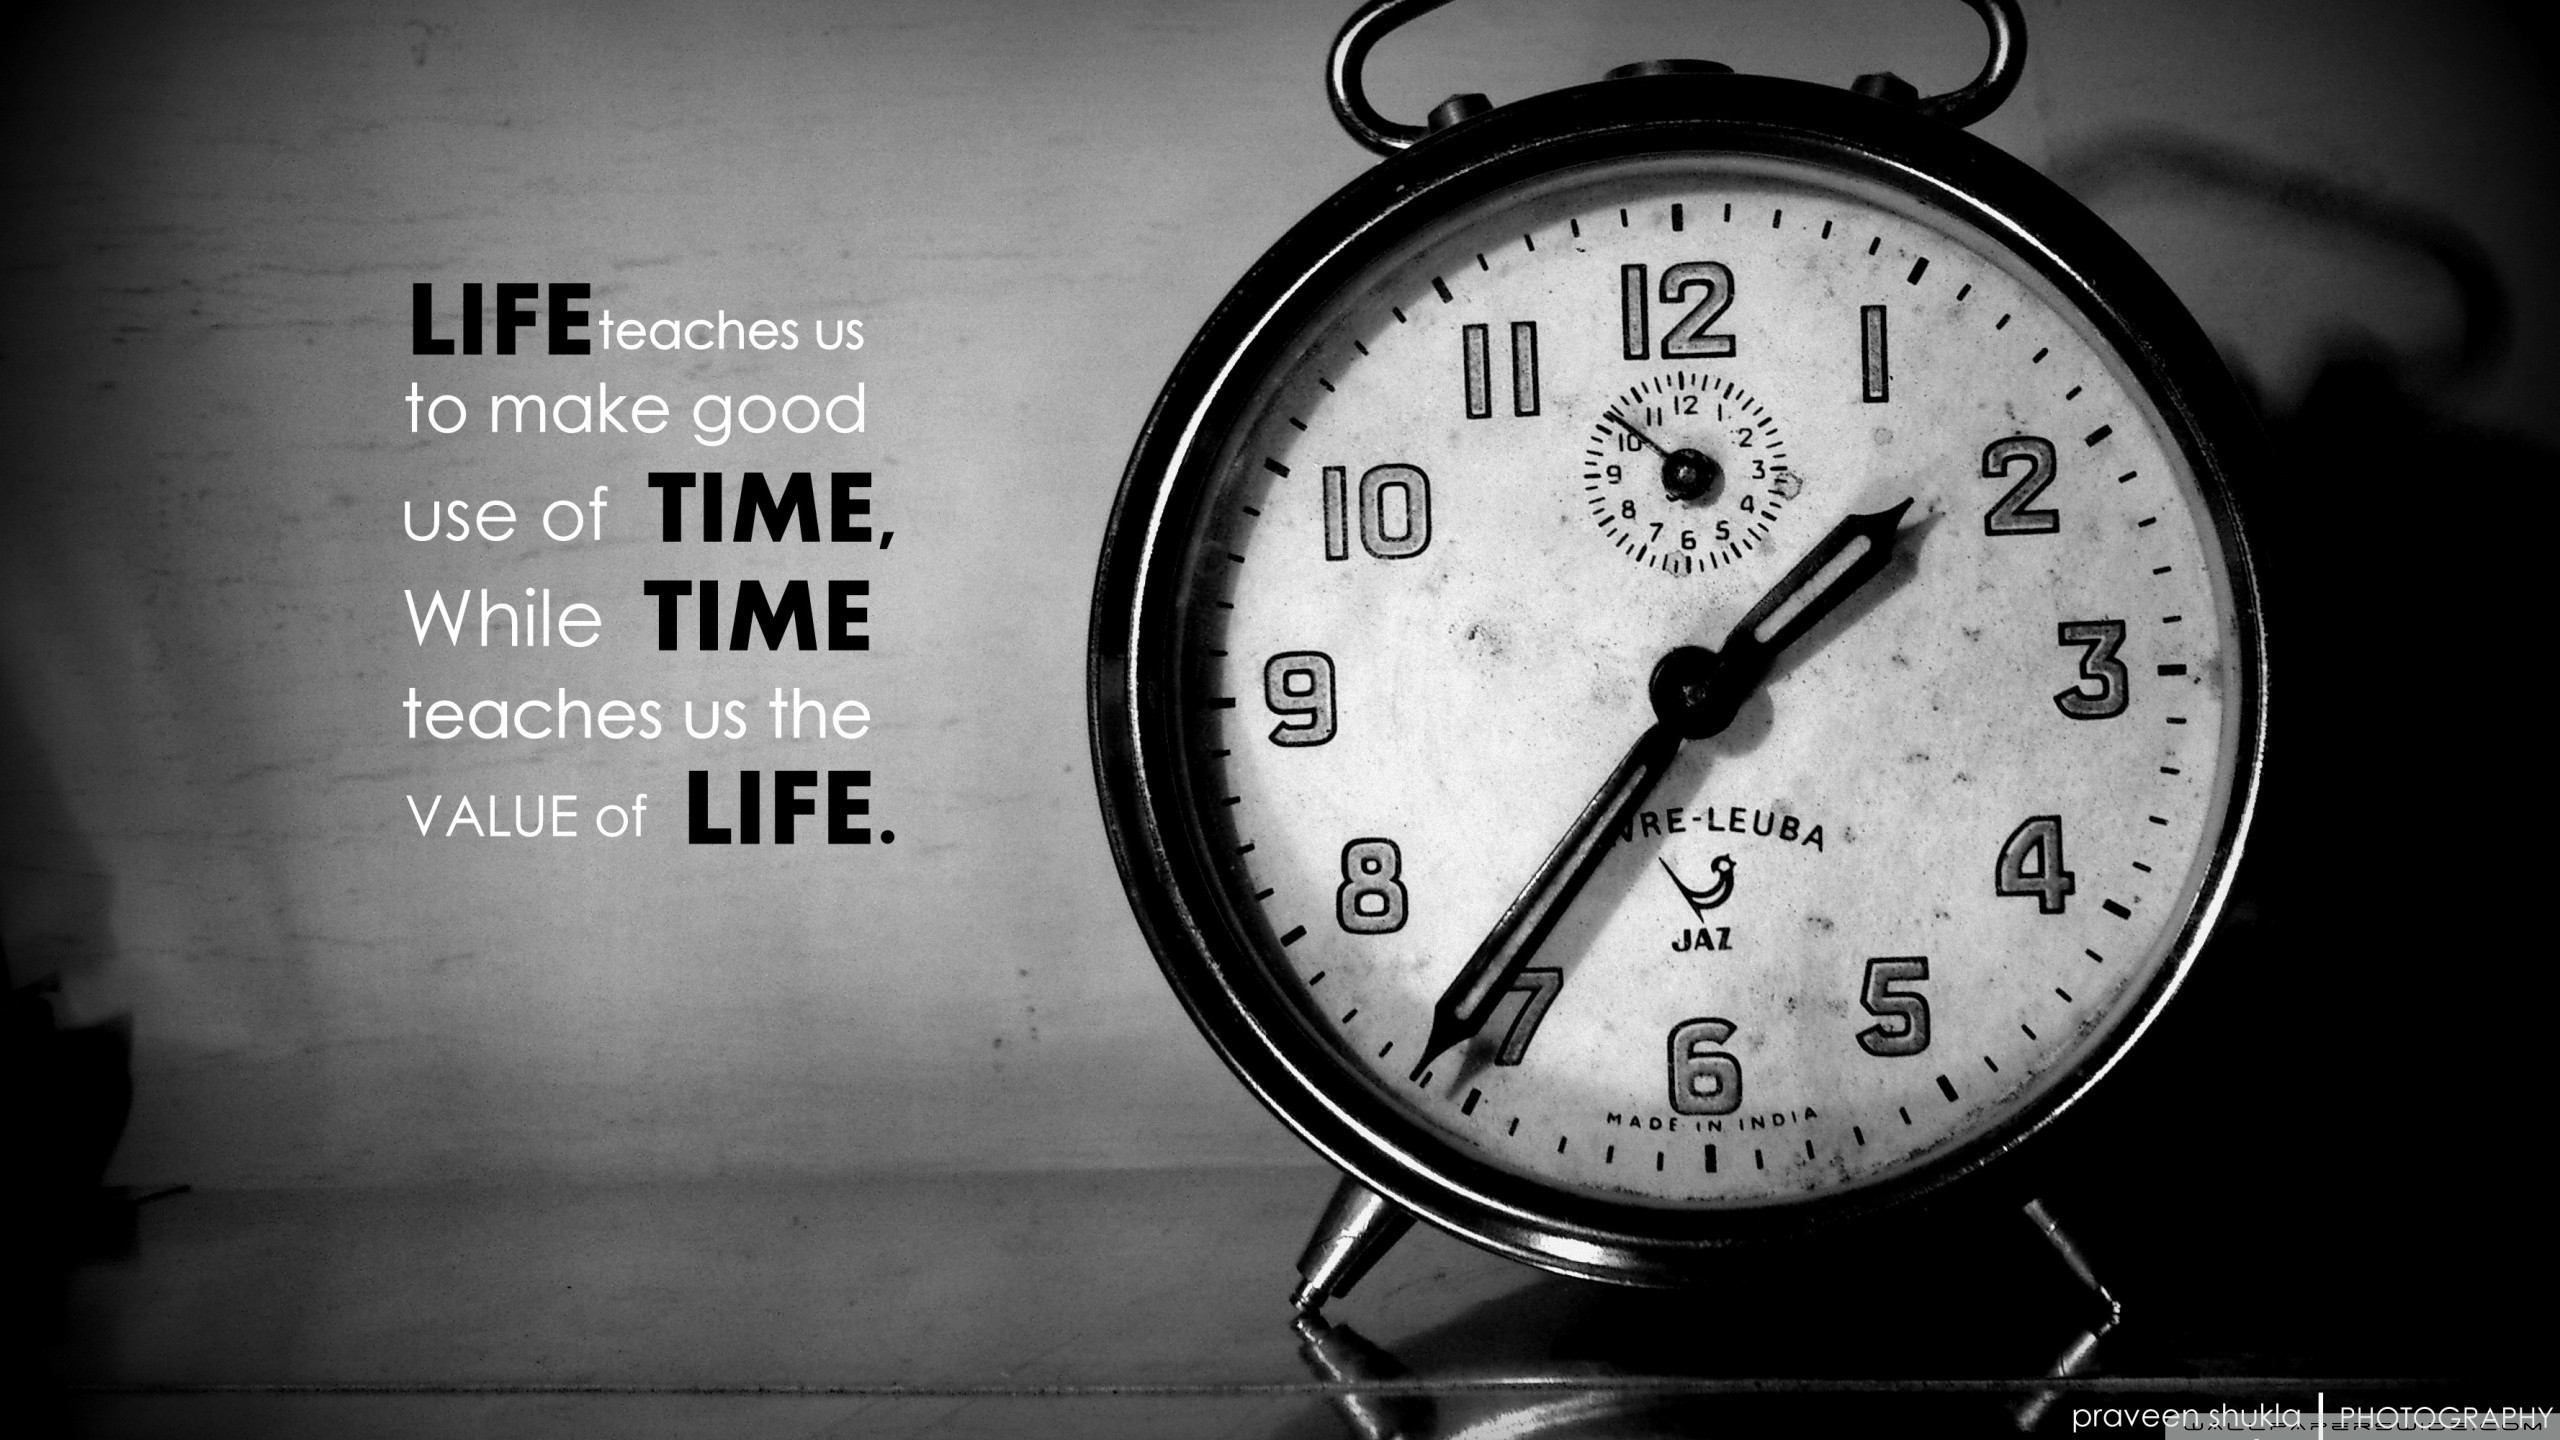 Life teaches us to appreciate the time and the time shows the 2560x1440